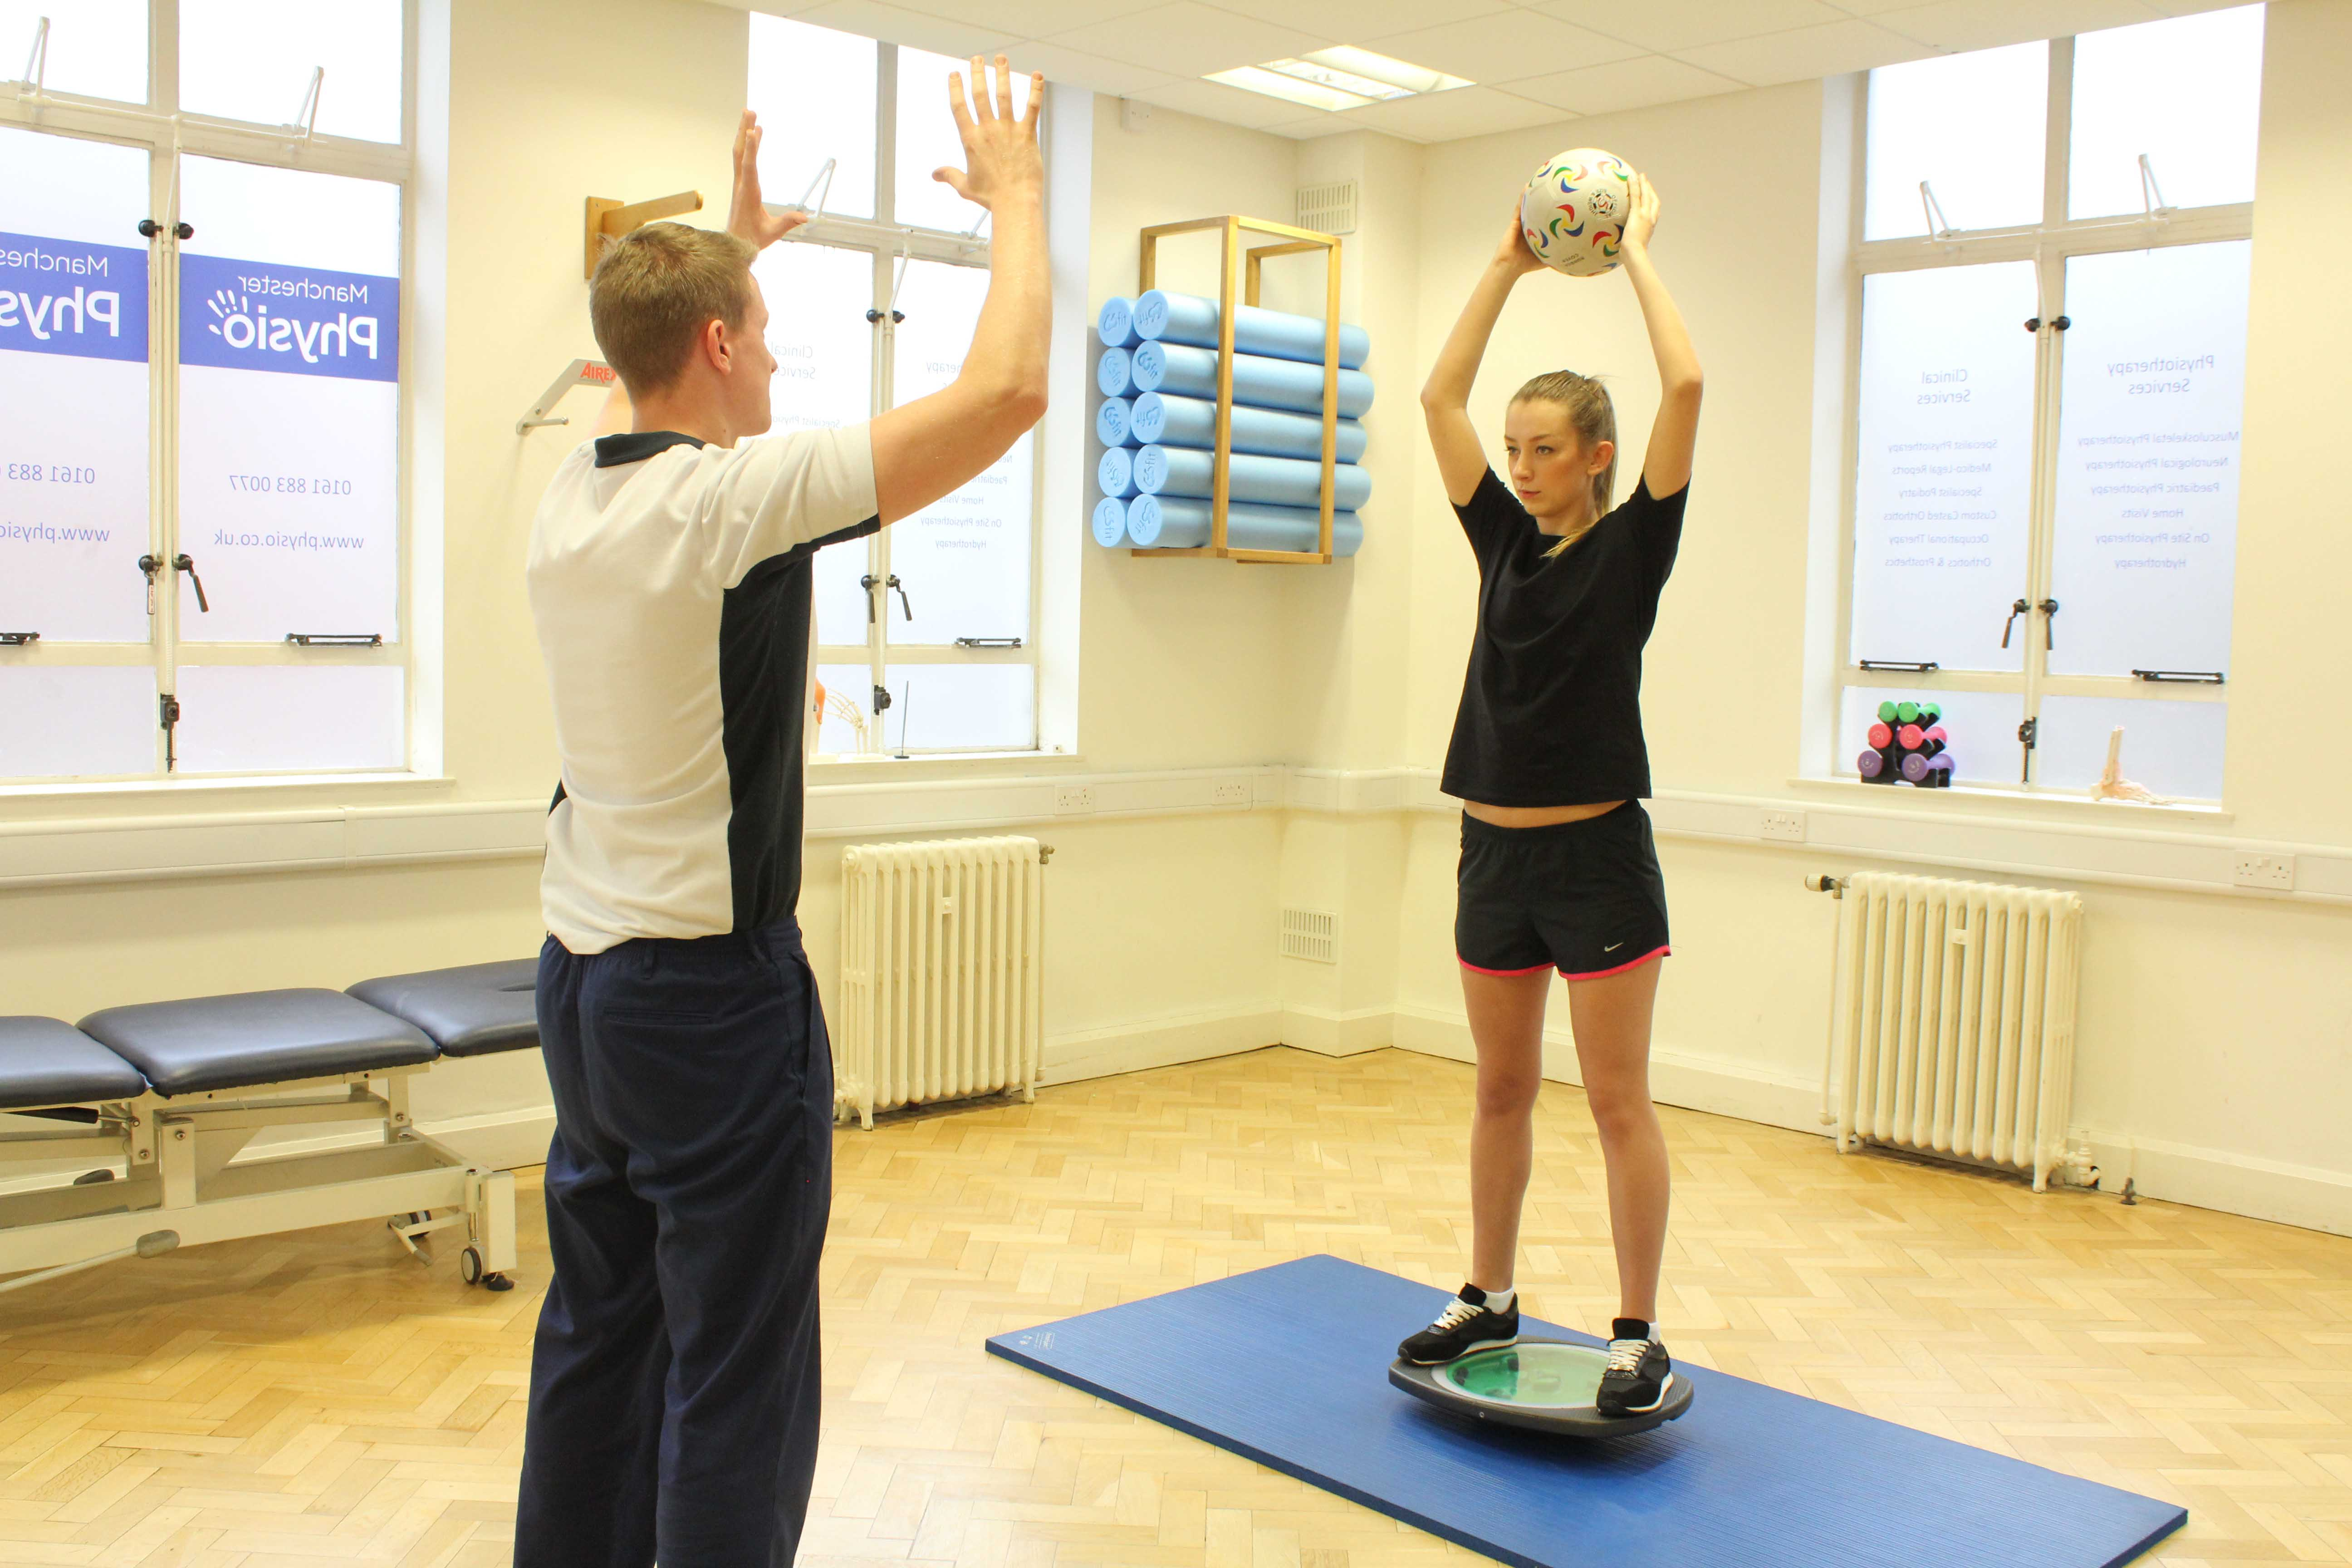 Knee stability exercises conducted by experienced physiotherapist